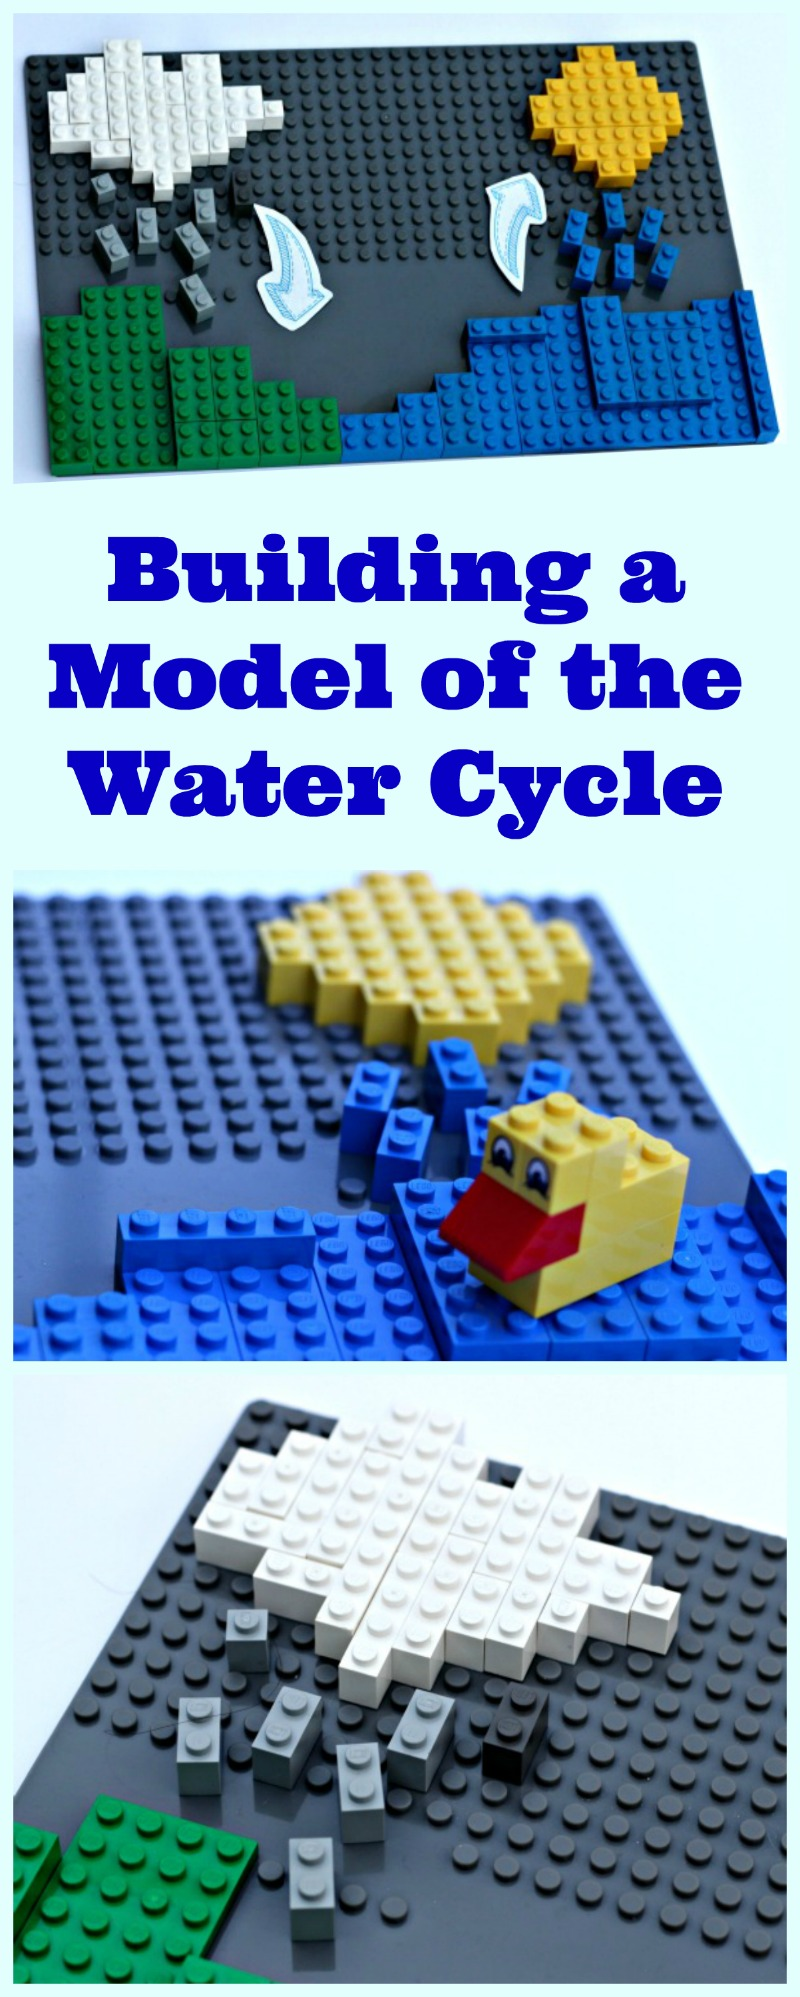 The Water Cycle: an easy science project for kids